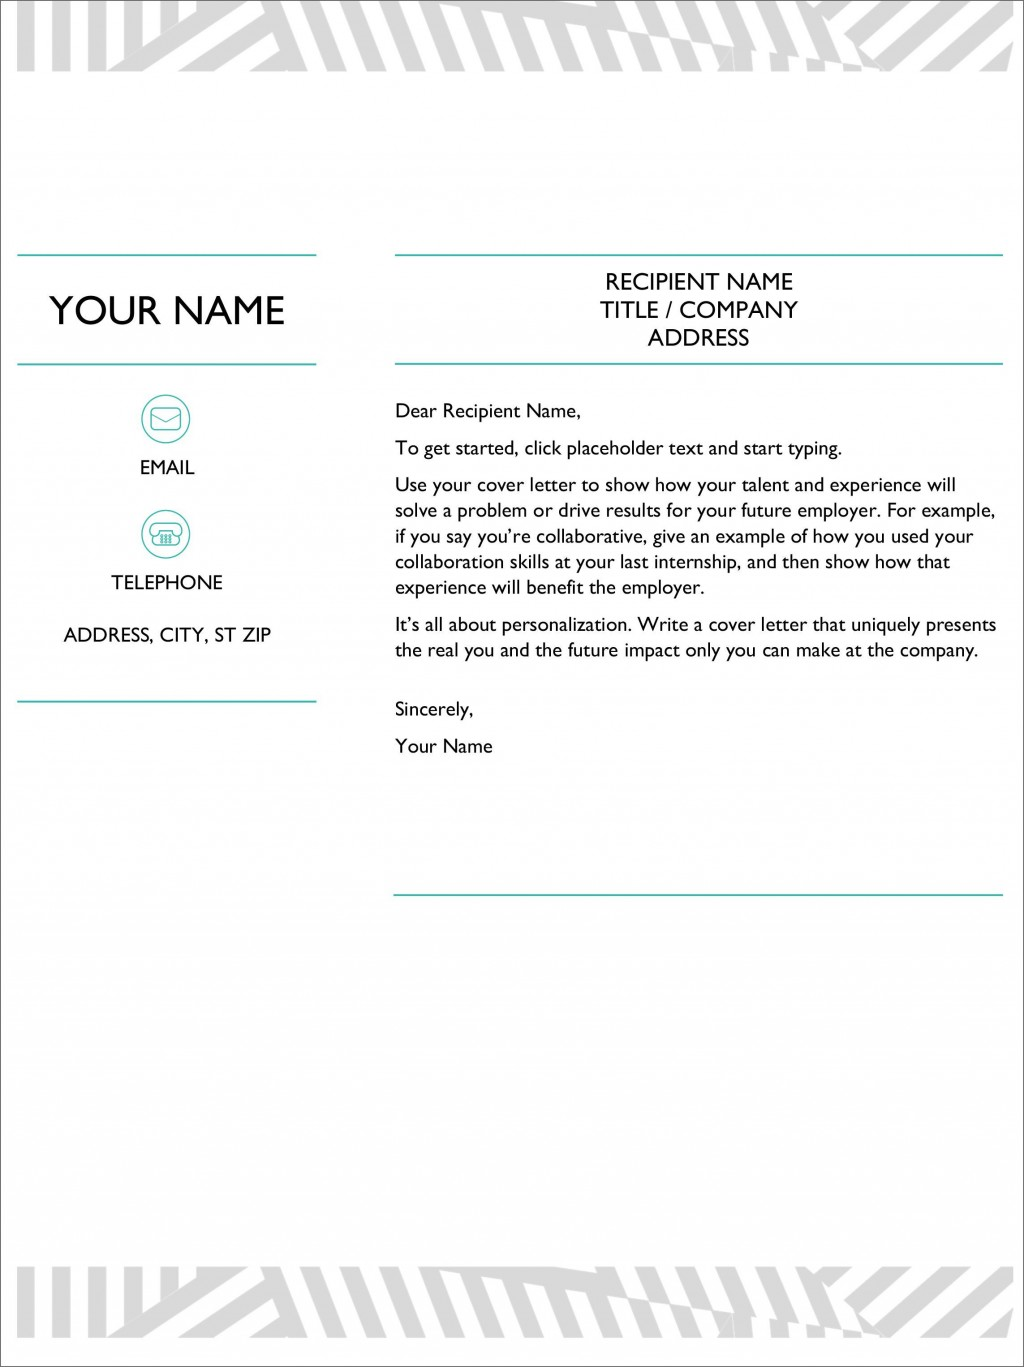 002 Fascinating Download Resume Cover Letter Sample Free Highest Clarity Large